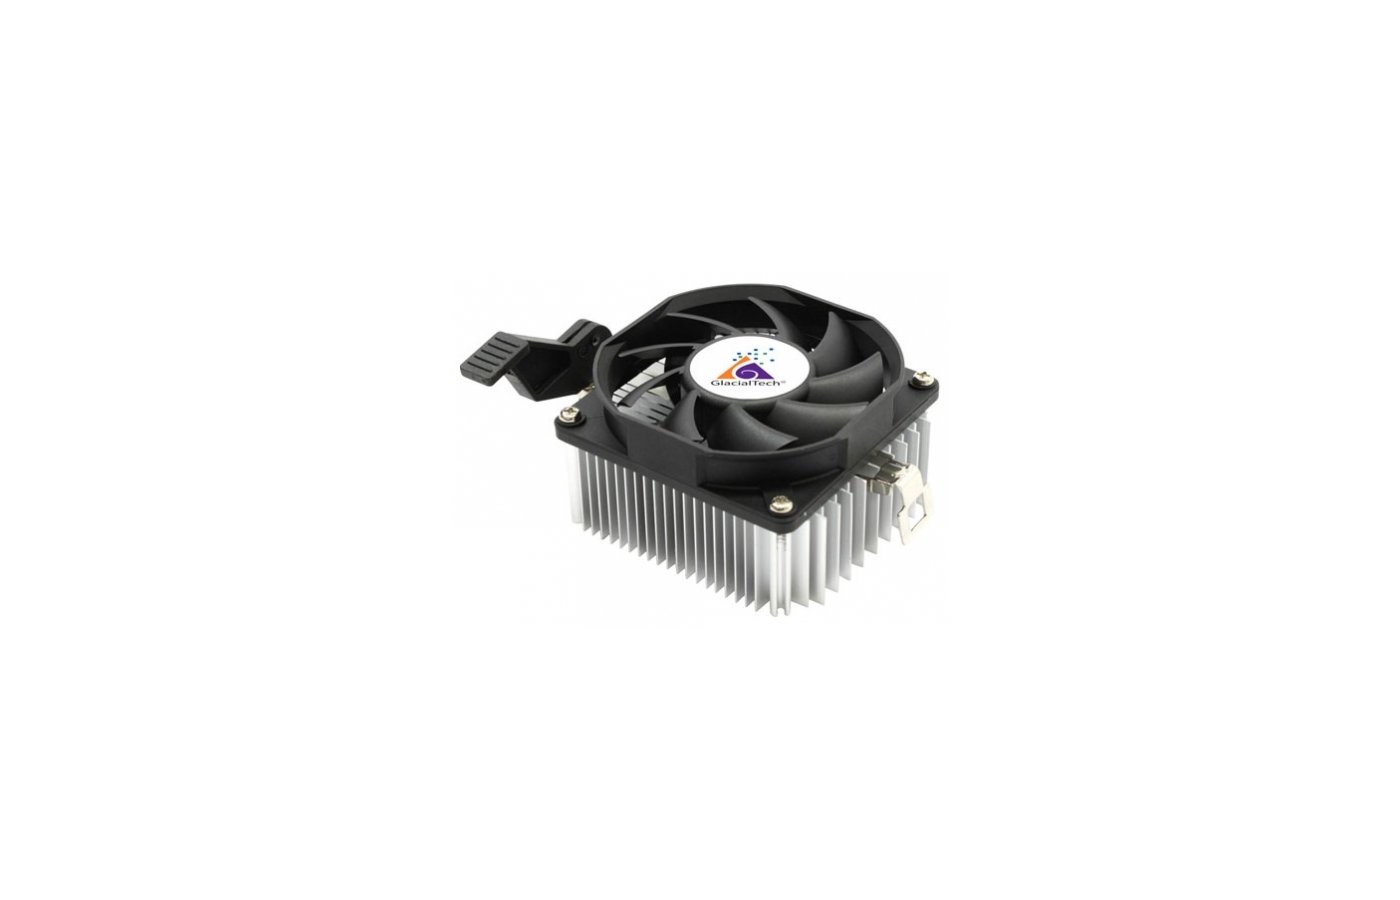 Охлаждение Glacialtech Igloo A200 PWM Soc-AMD/ 4pin 15-34dB Al 72W 165g скоба BULK